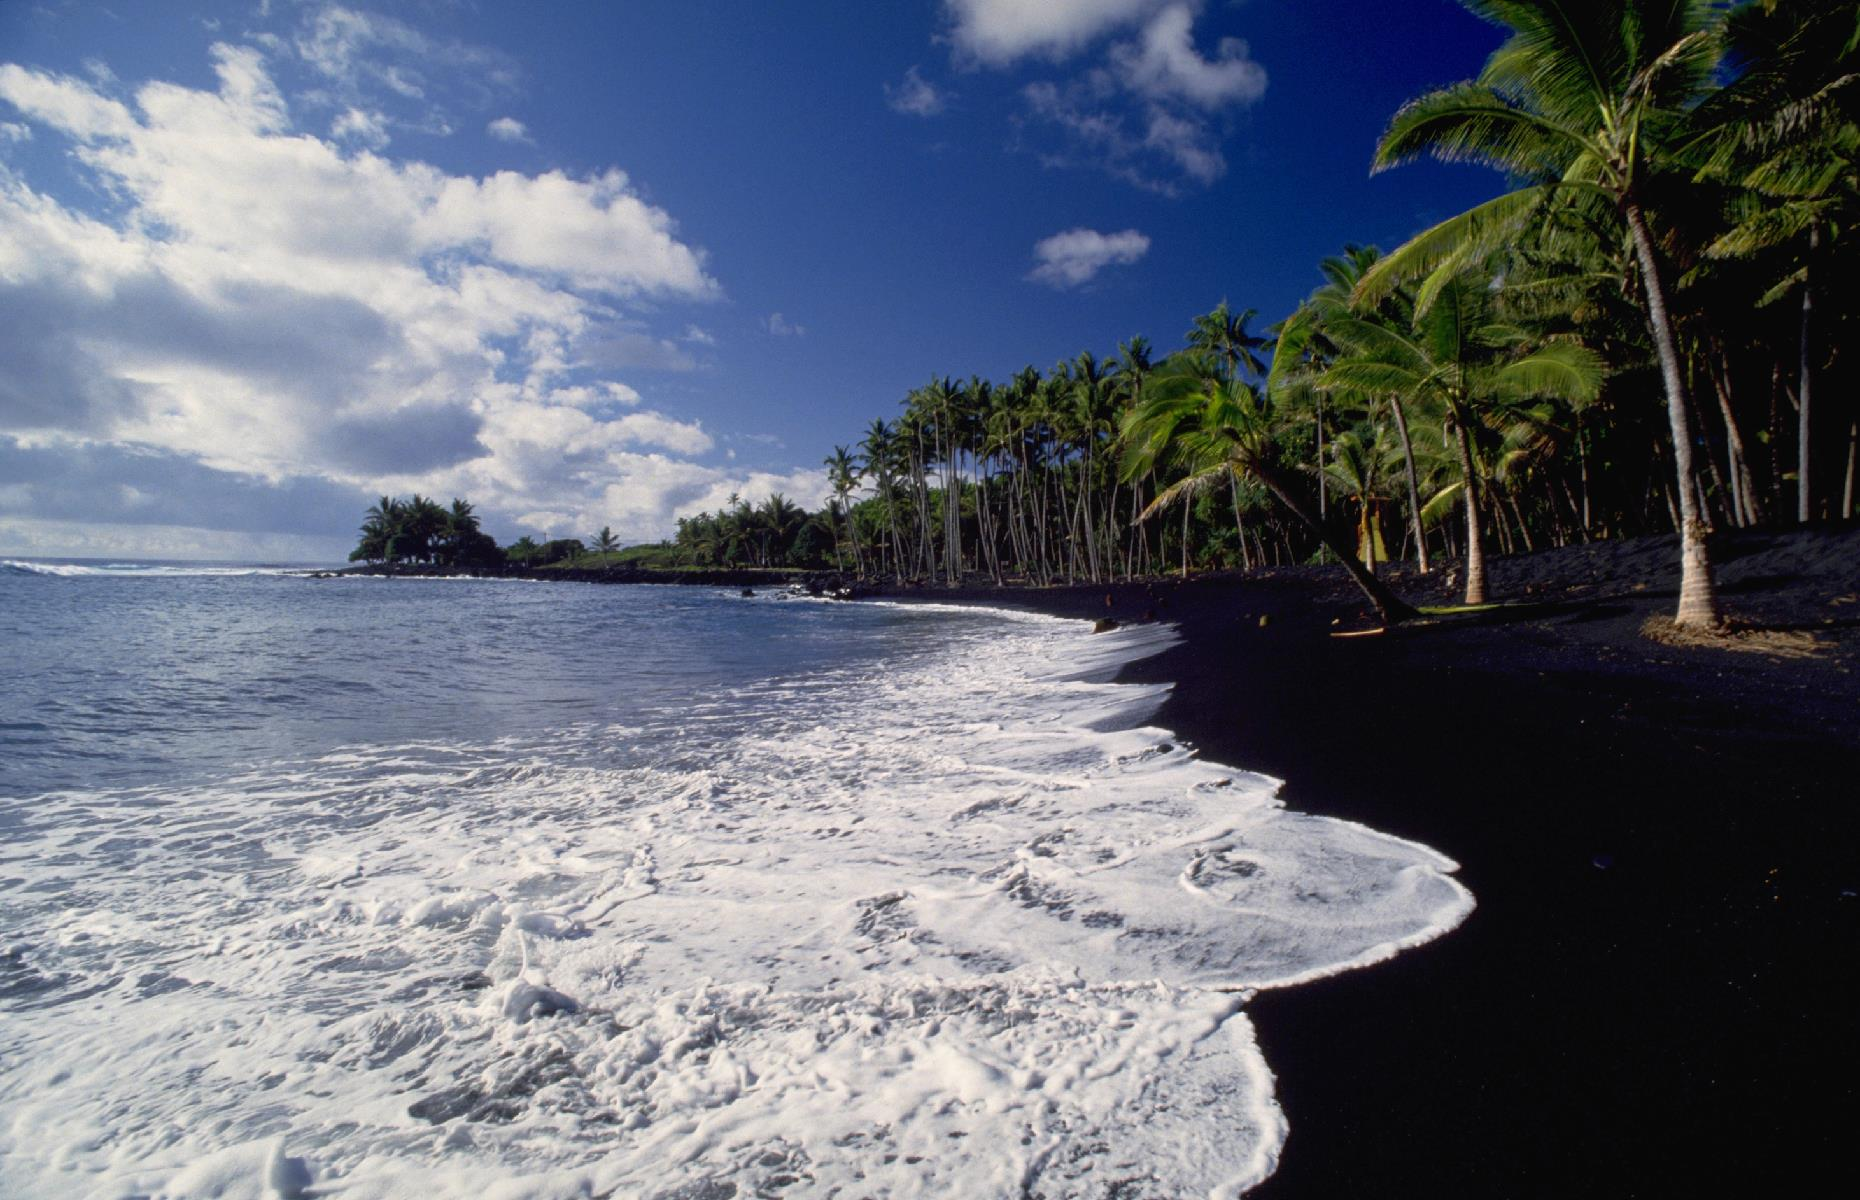 Slide 4 of 31: The Aloha State is known for its stunning black-sand strands and Kaimu Beach, on the Island of Hawaii, was one of the finest. Spreading over an eastern corner of the isle, its inky powder was hemmed in by palms and it drew tourists from across the country. This photo from 1985 shows the beach in all its glory. But, in the 1990s, this natural wonder was destroyed.